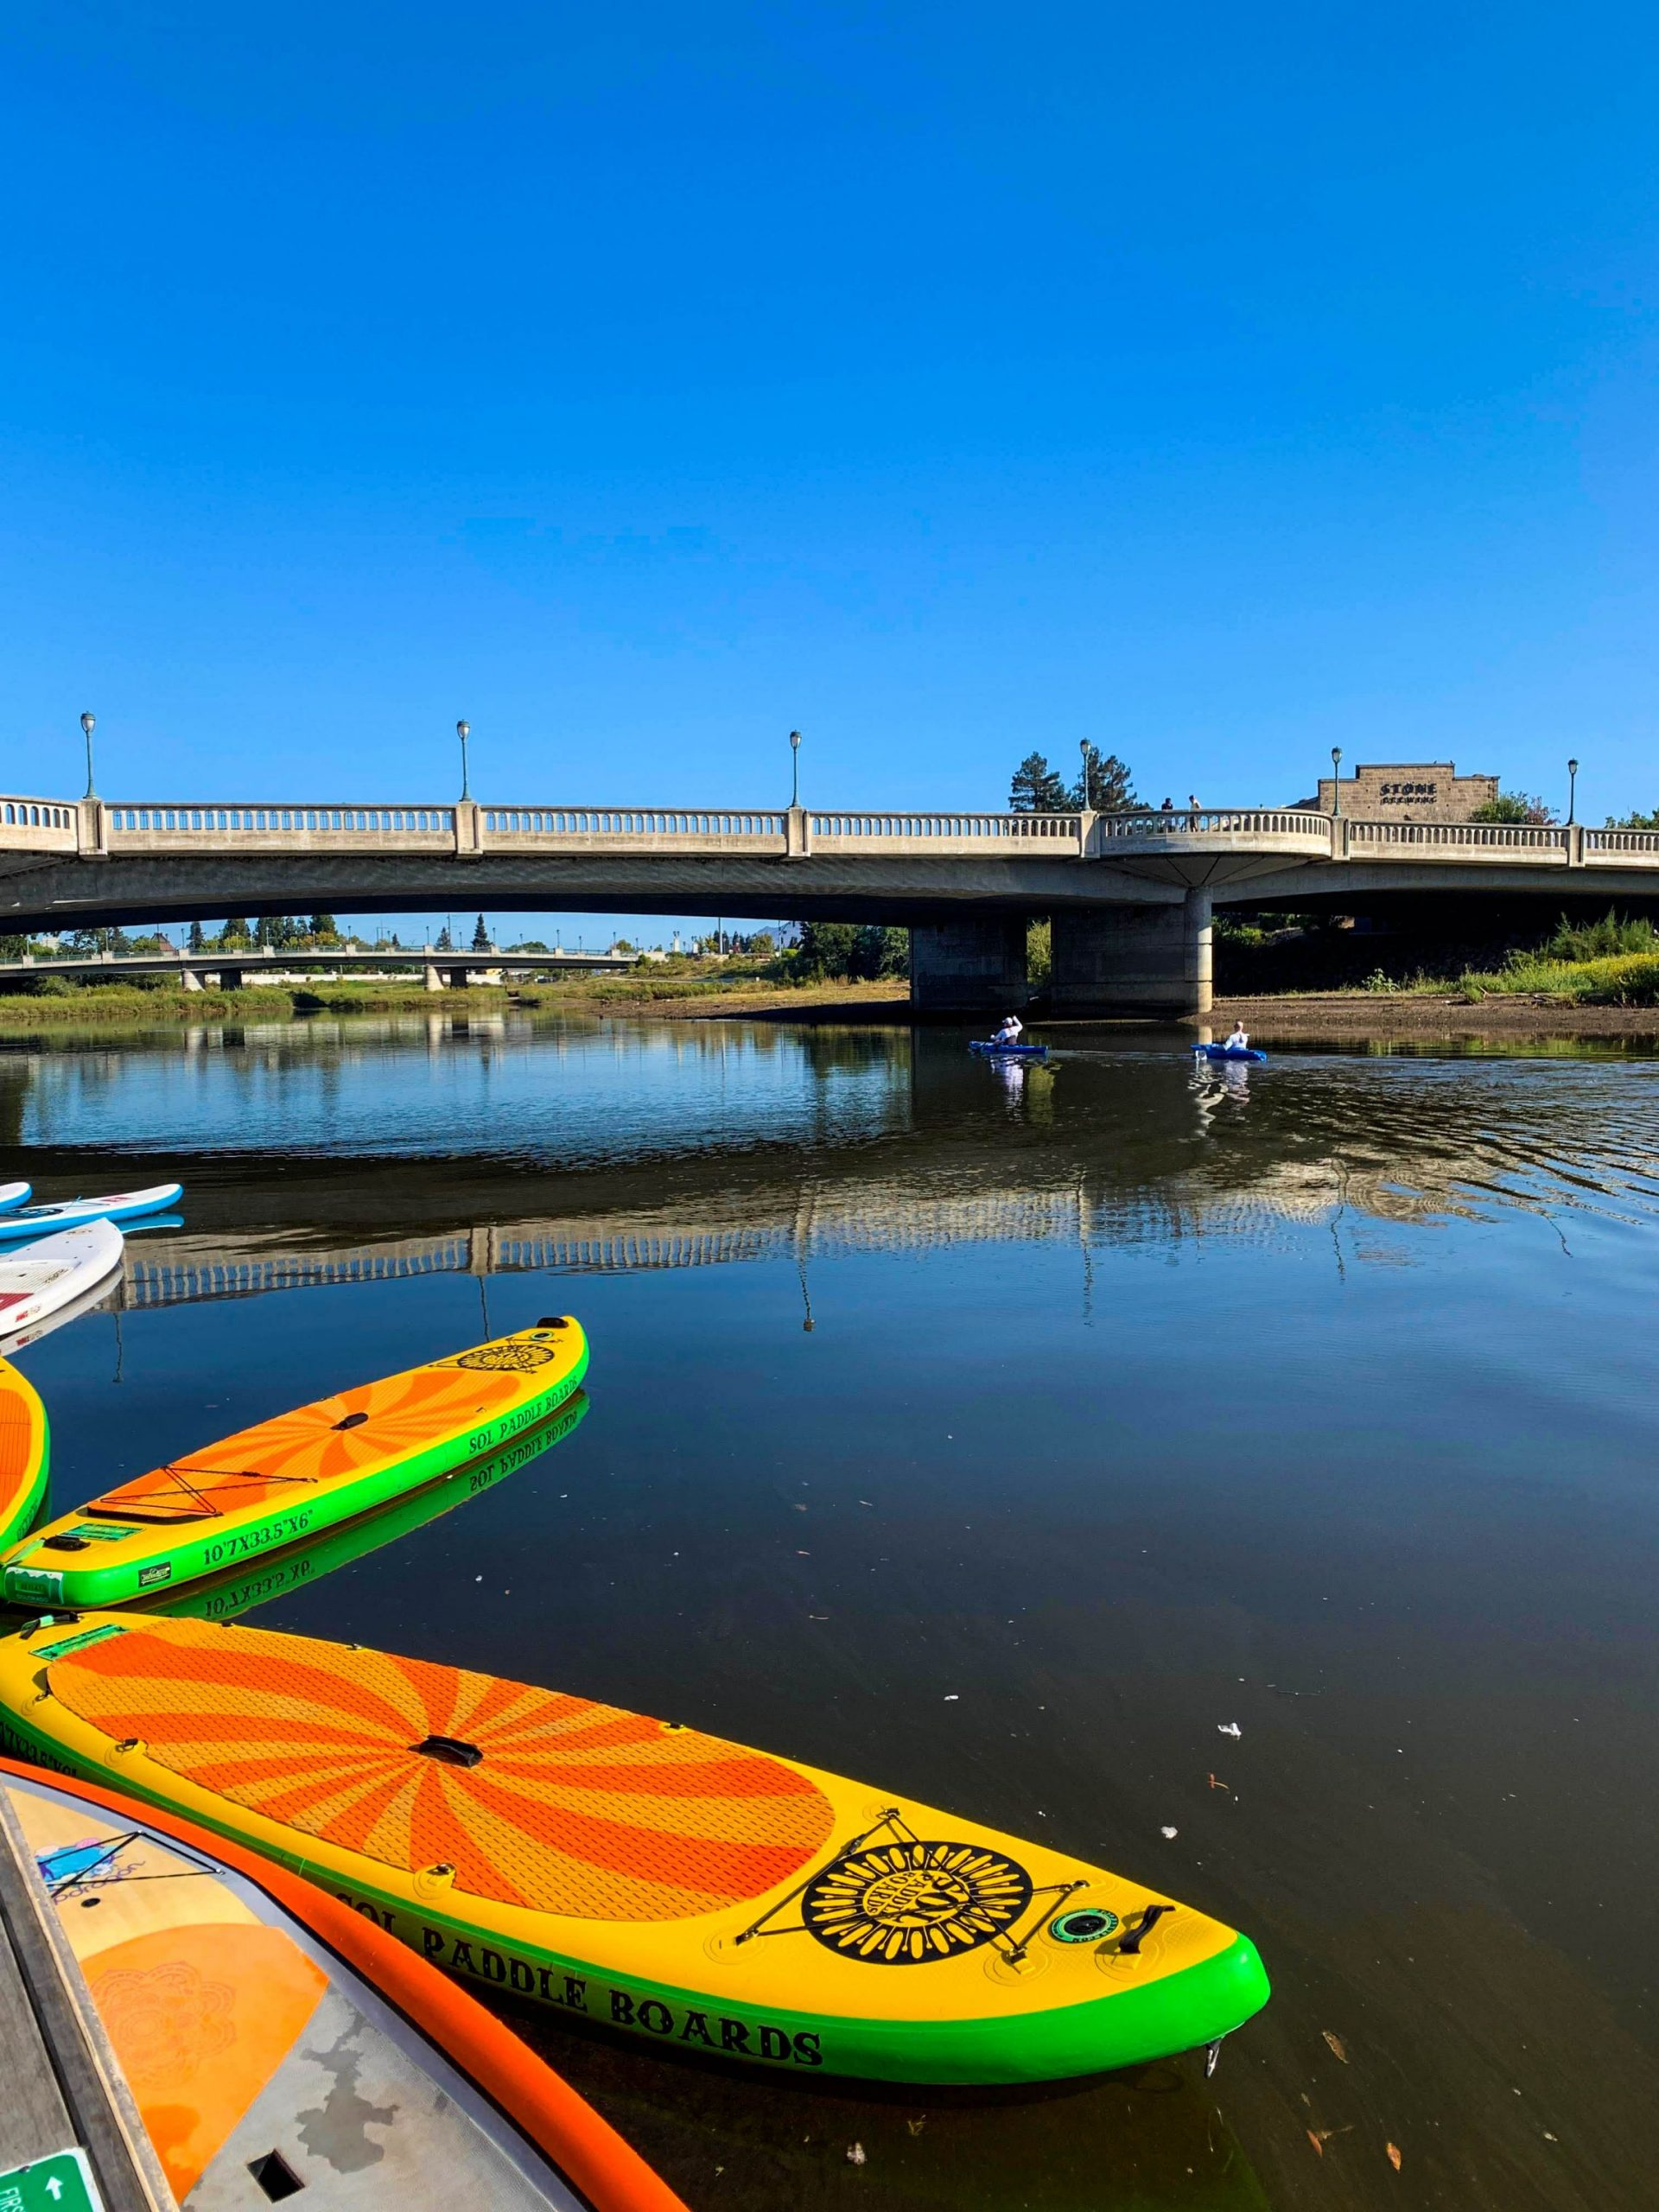 Rent a kayak or stand up paddle board and jump on the Napa Valley River.